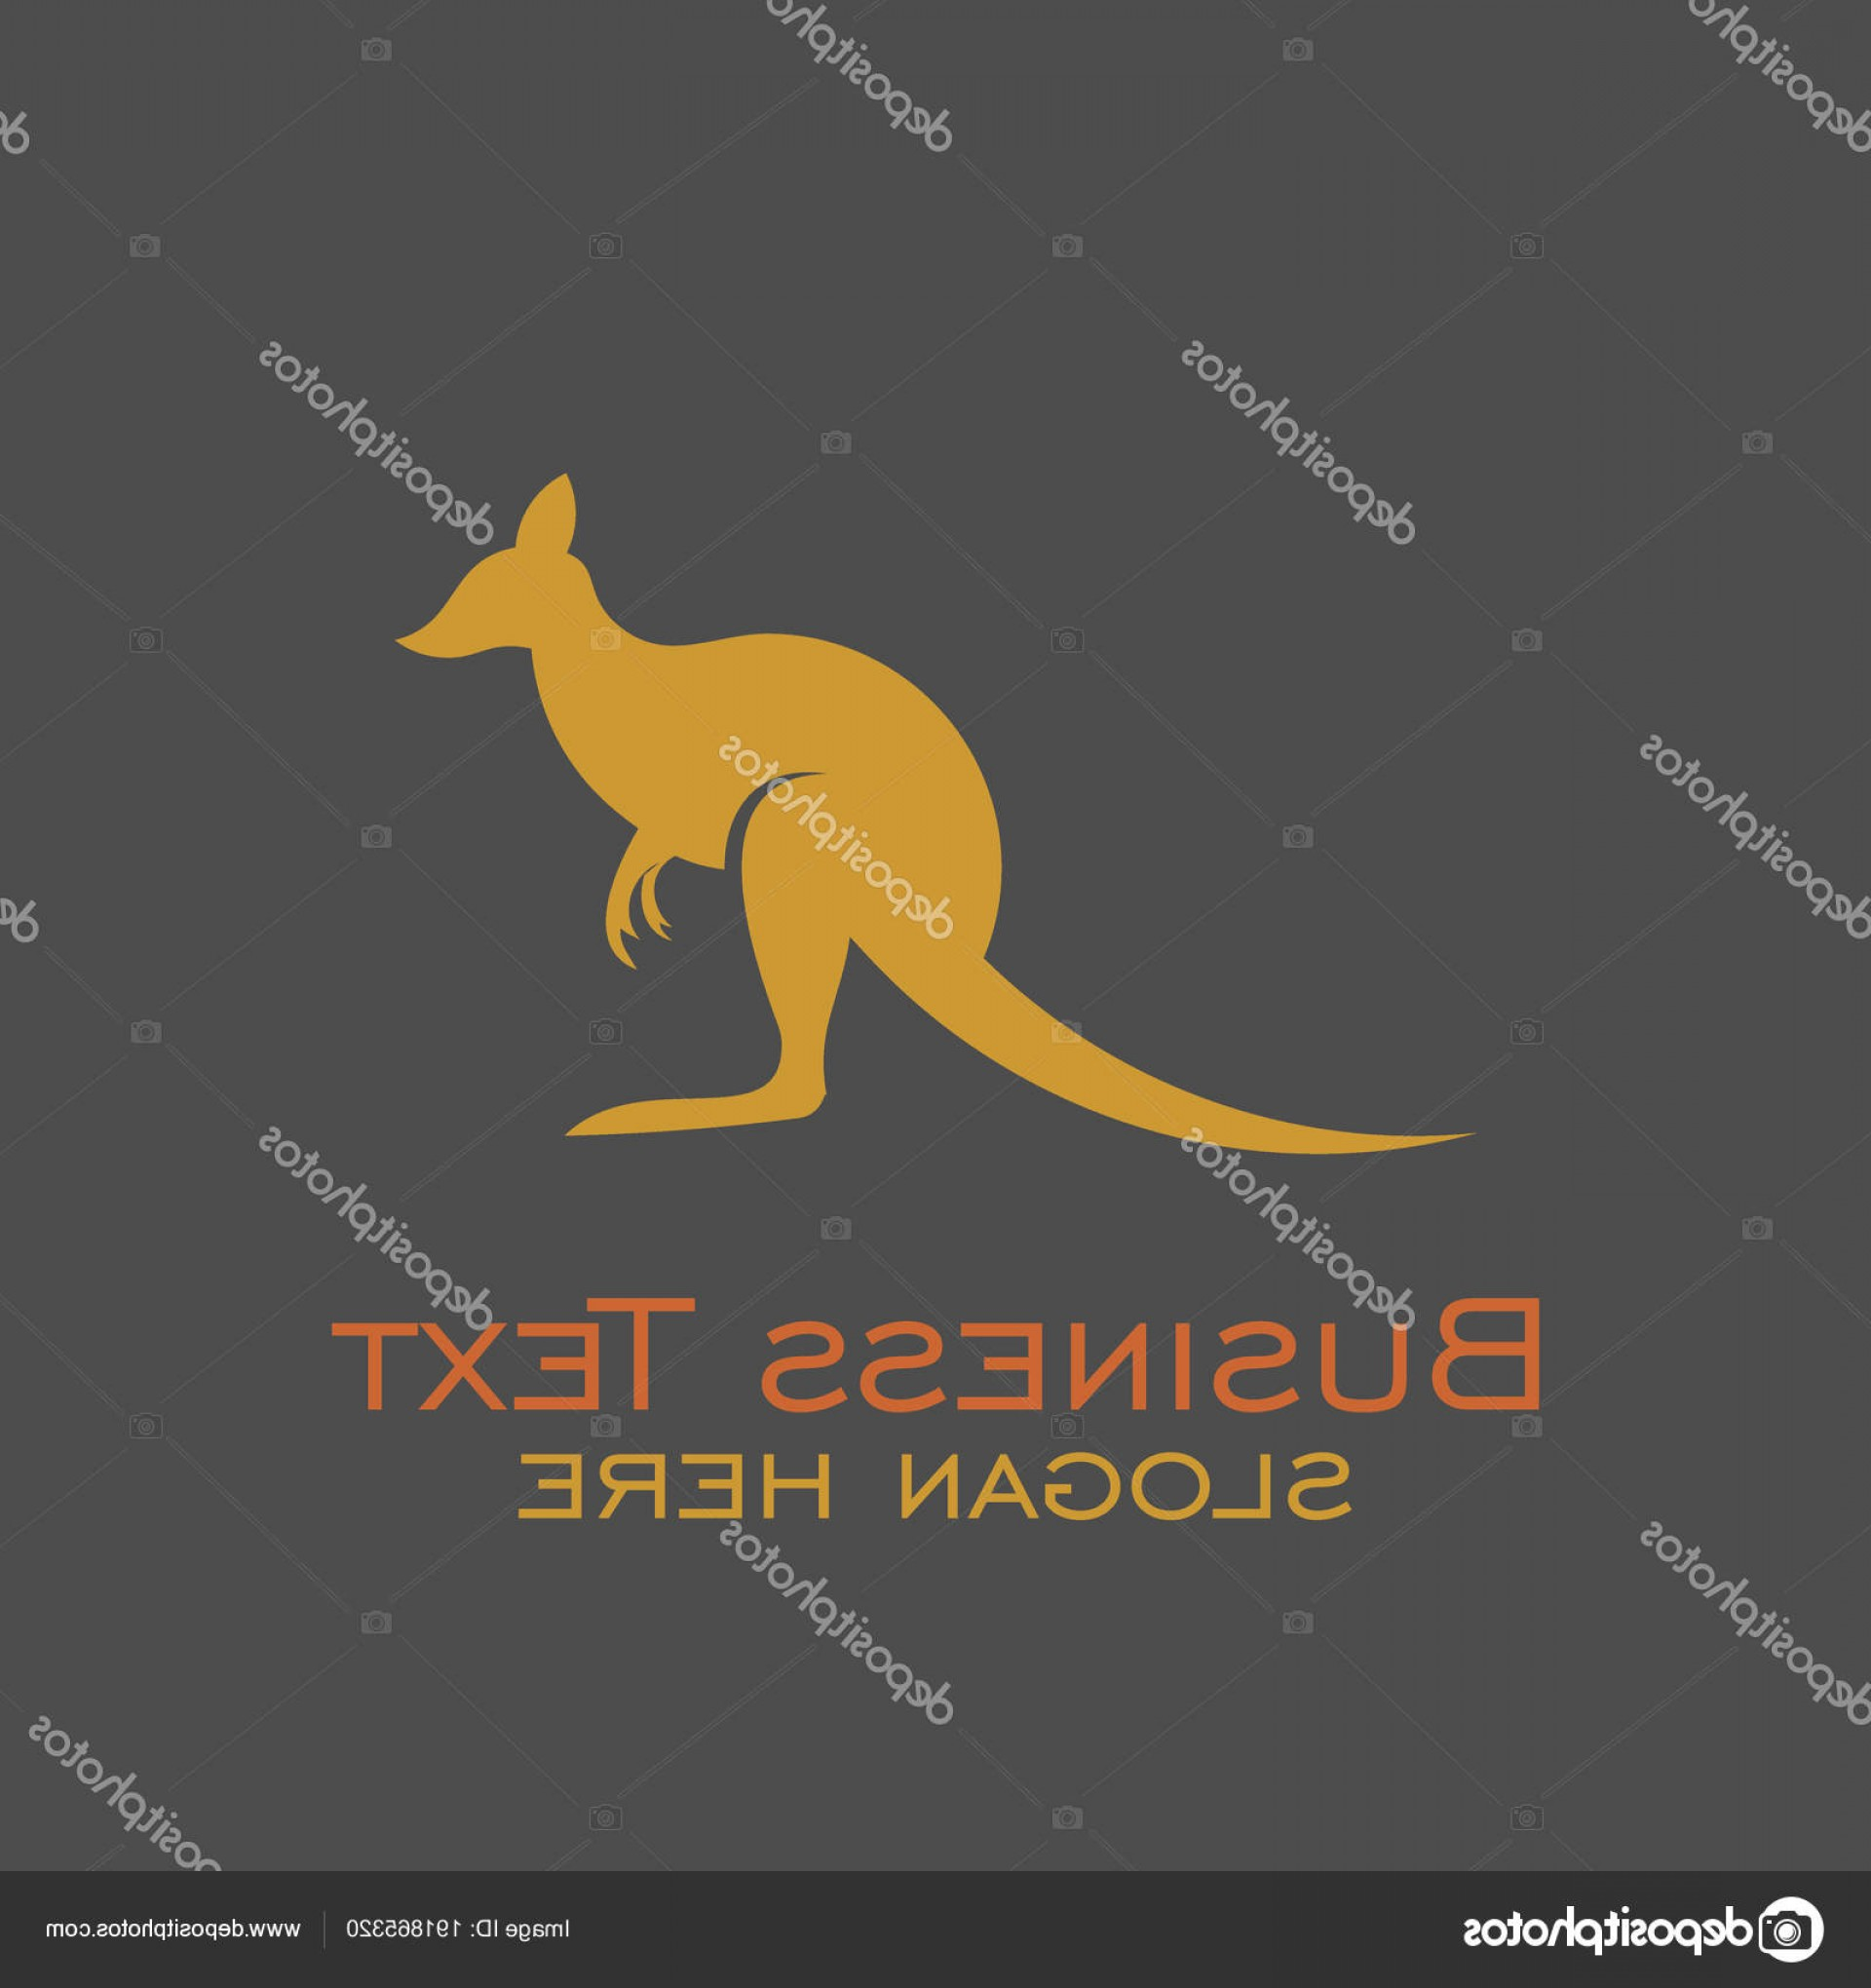 Illustrator Vector Format: Stock Illustration Kangaroo Logo Vector Also Available